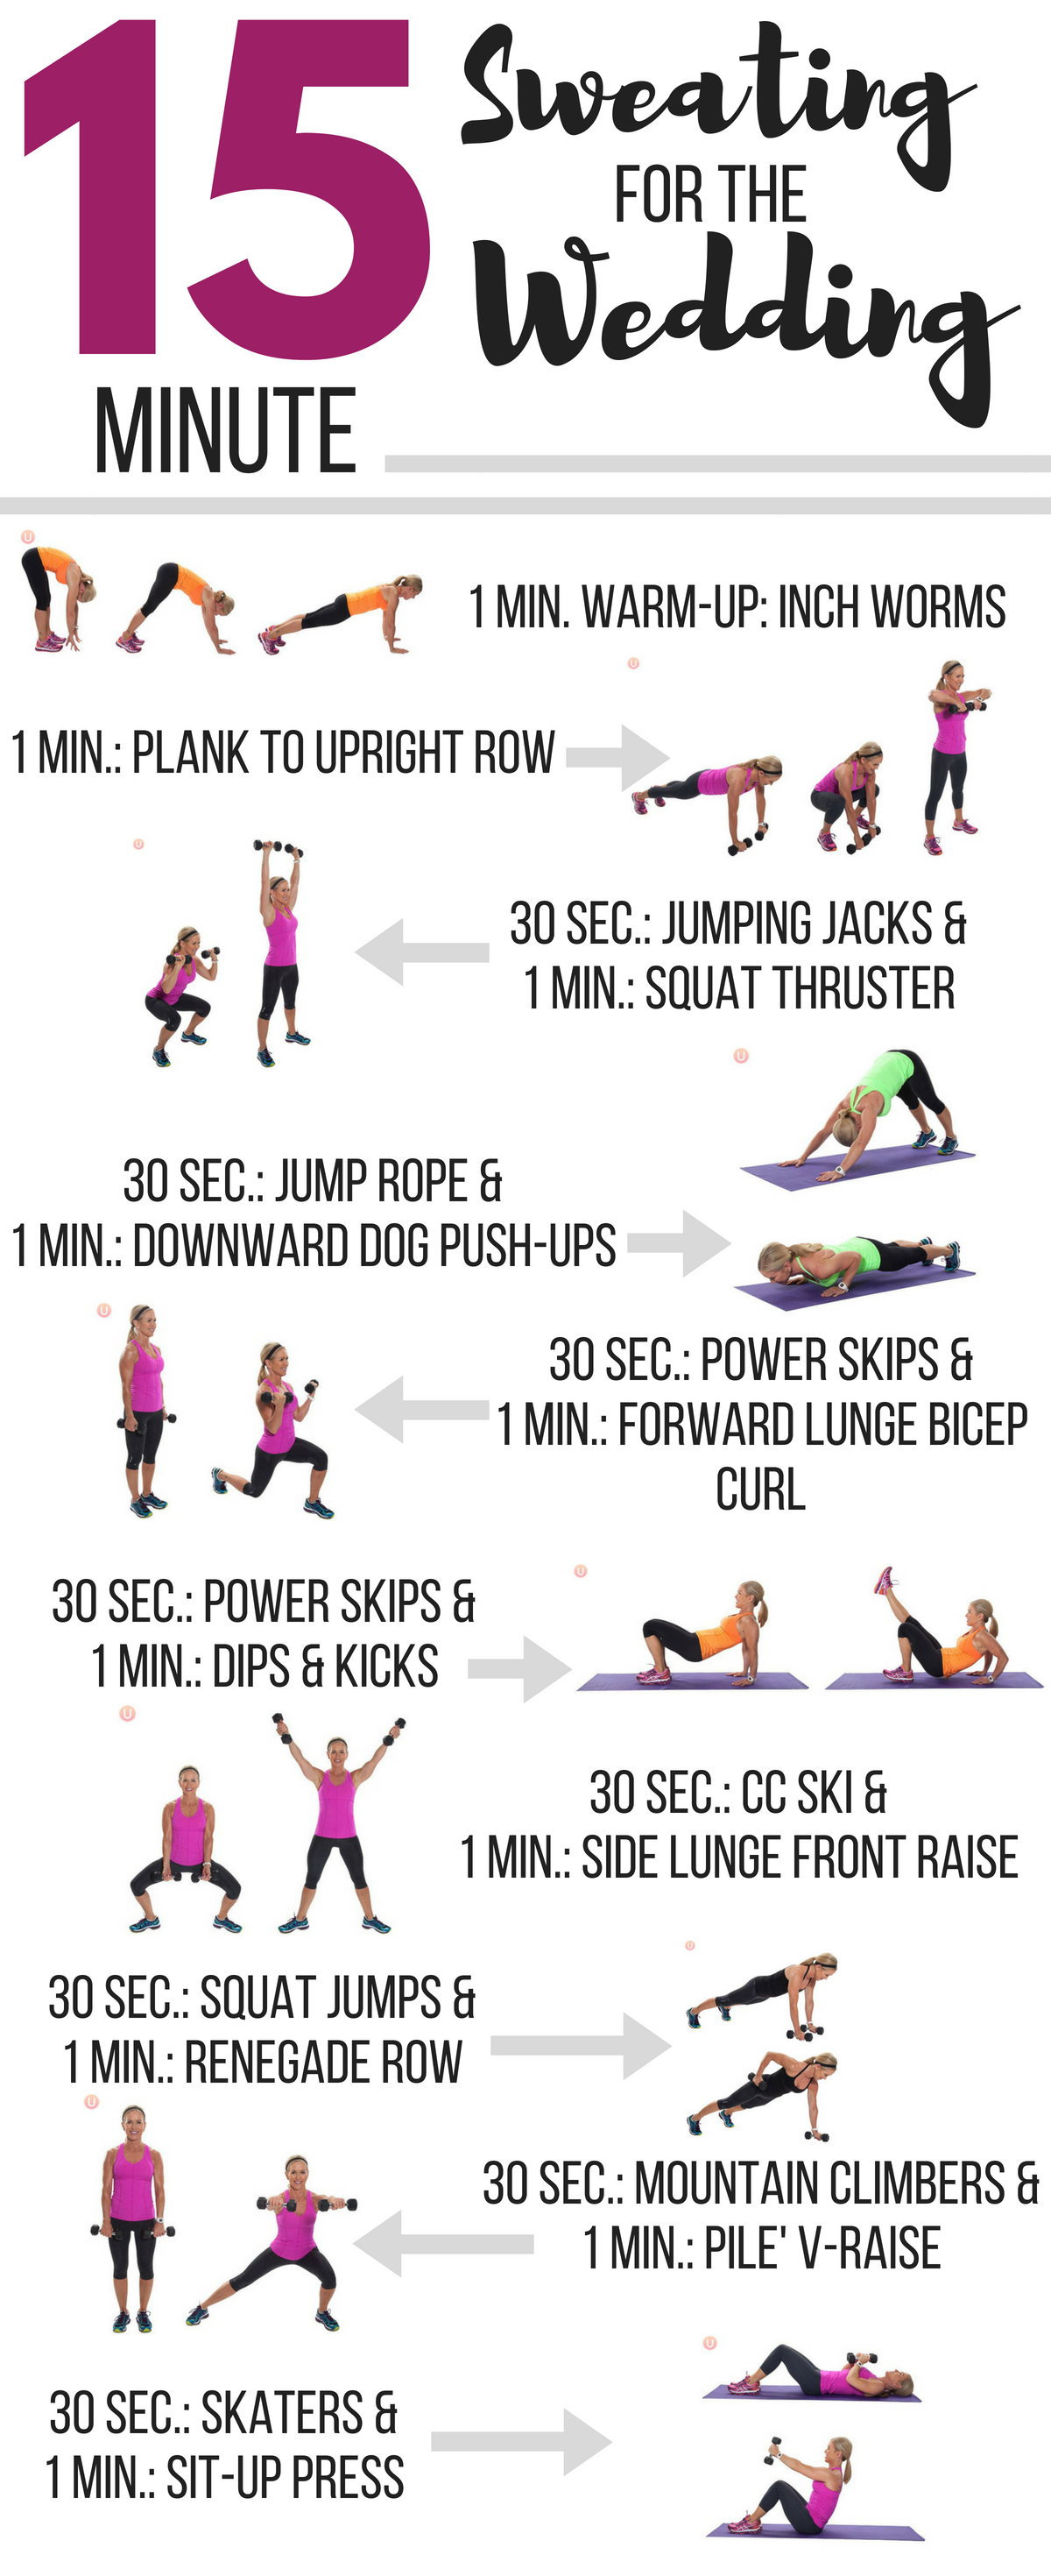 15 Minute Sweating For The Wedding Workout Get Healthy U Wedding Workout Plan Wedding Workout Easy Workouts